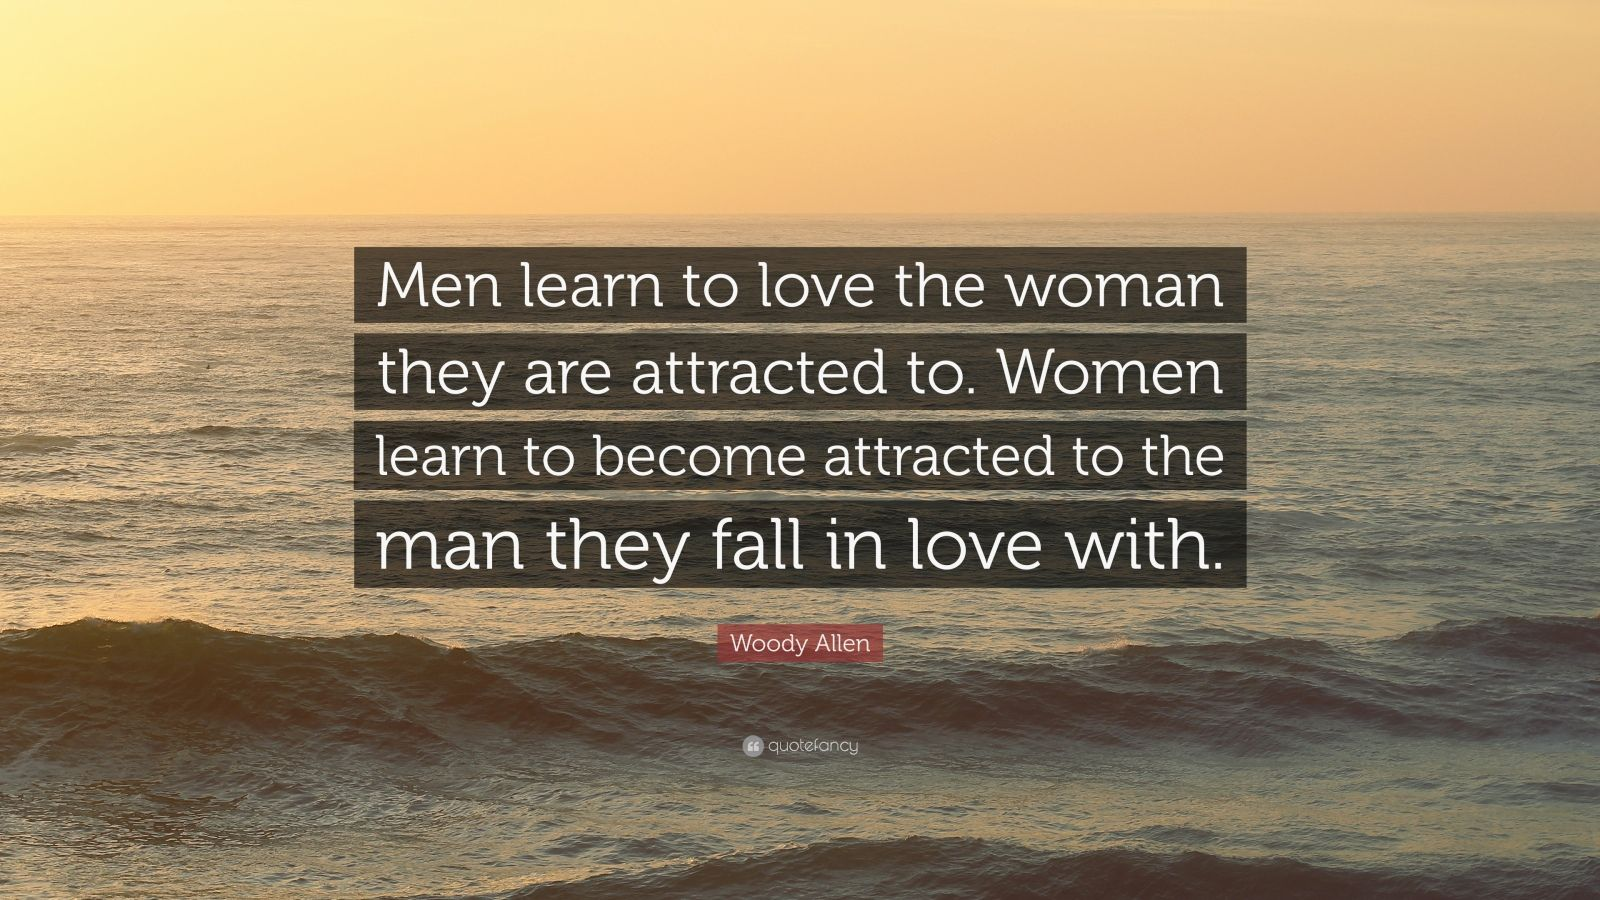 """Woody Allen Quote: """"Men learn to love the woman they are attracted to. Women learn to become attracted to the man they fall in love with."""""""